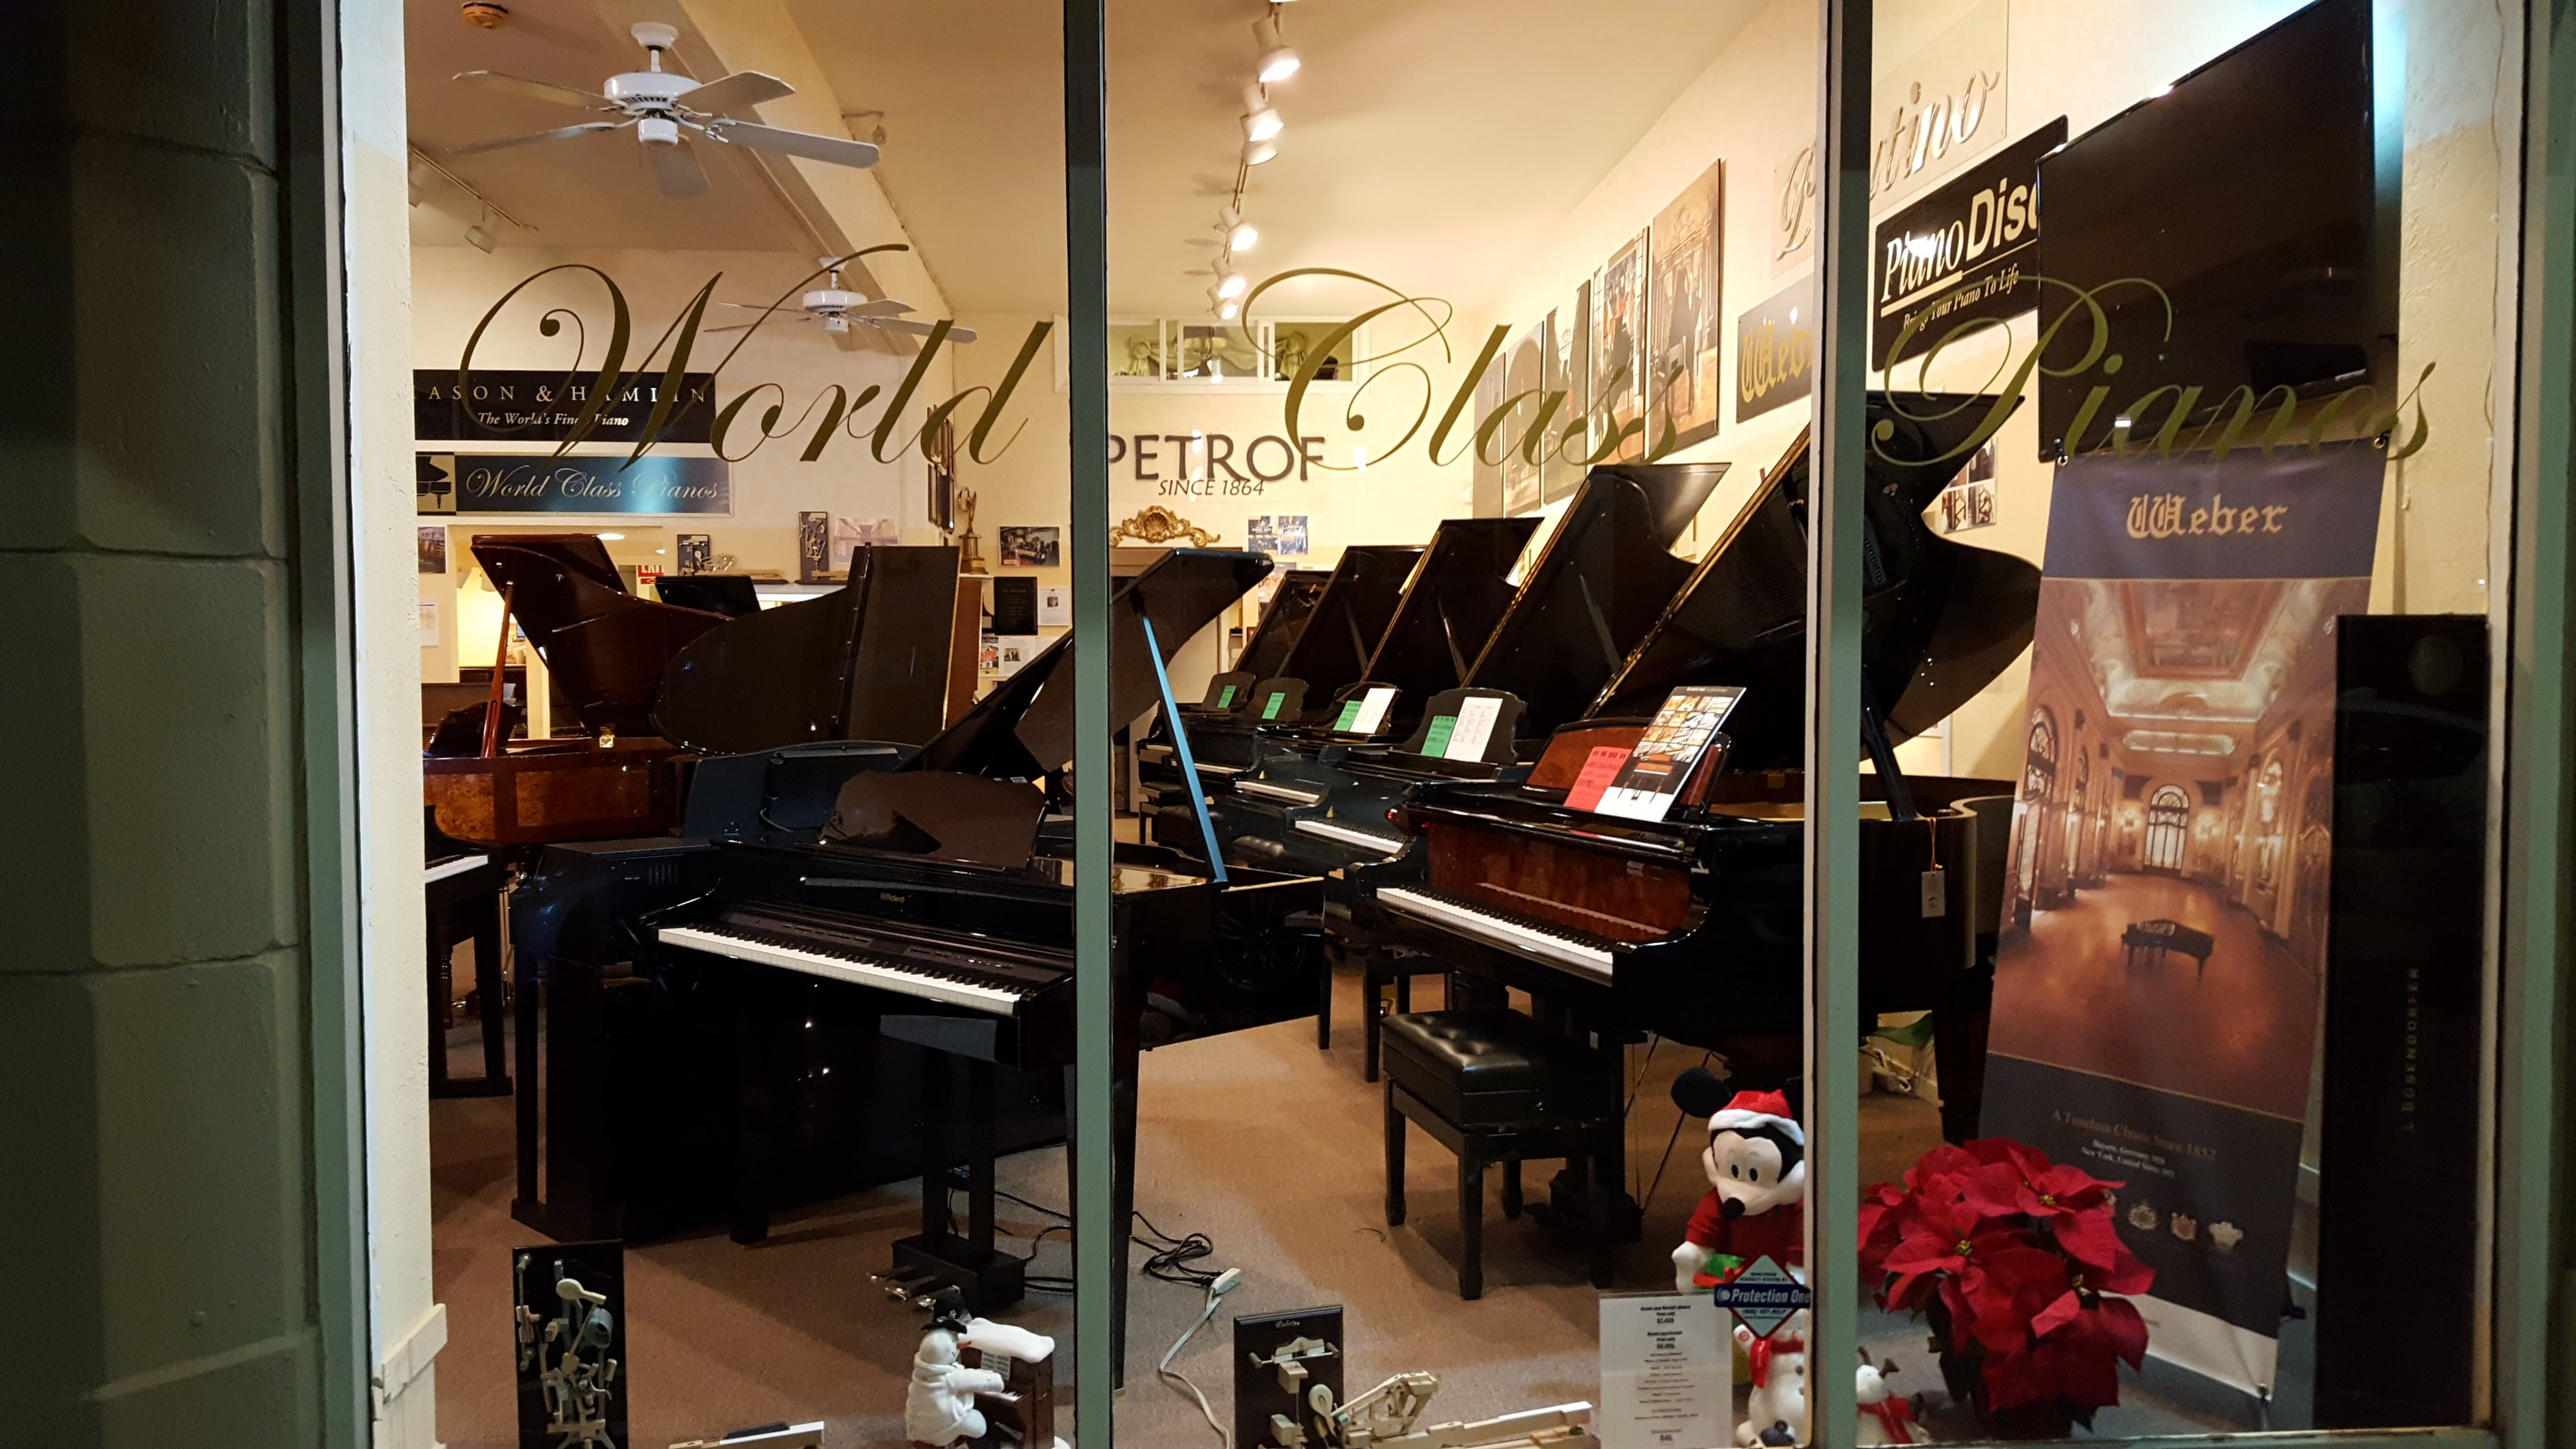 Digital Piano in San Jose, CA - World Class Pianos